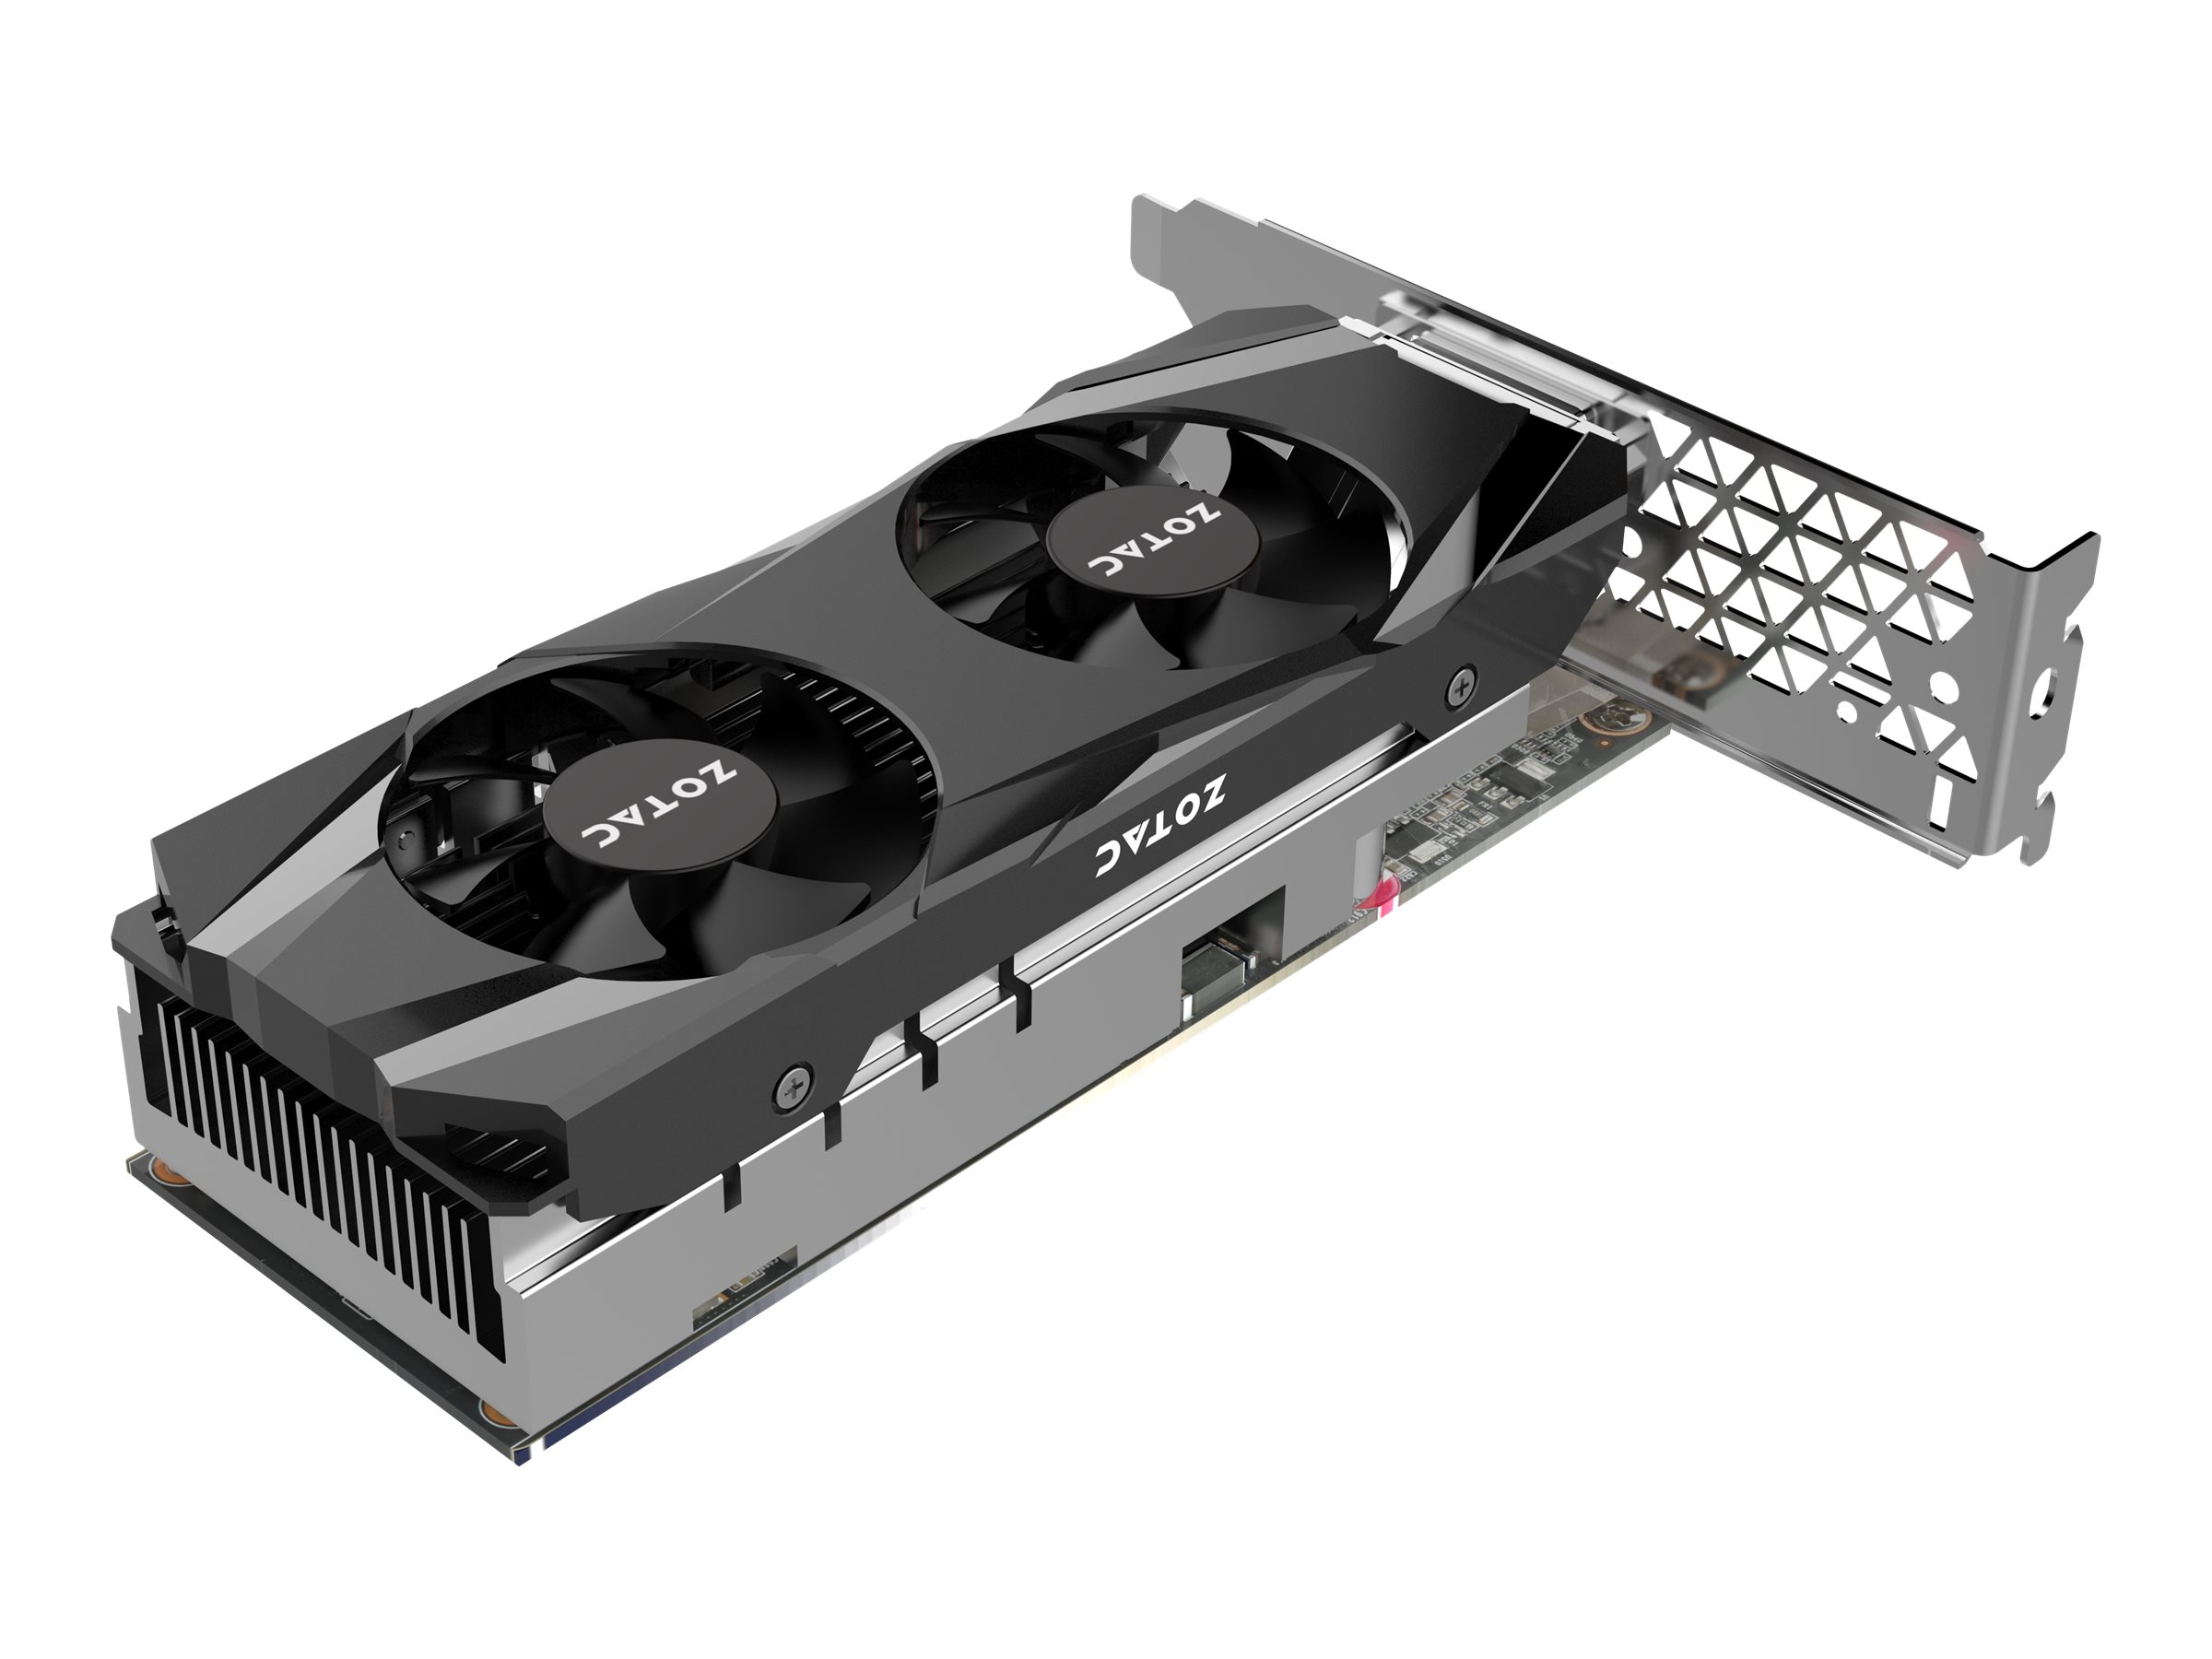 ZOTAC GeForce GTX 1050 Ti - Grafikkarten - GF GTX 1050 Ti - 4 GB GDDR5 - PCIe 3.0 Low Profile - DVI, HDMI, DisplayPort